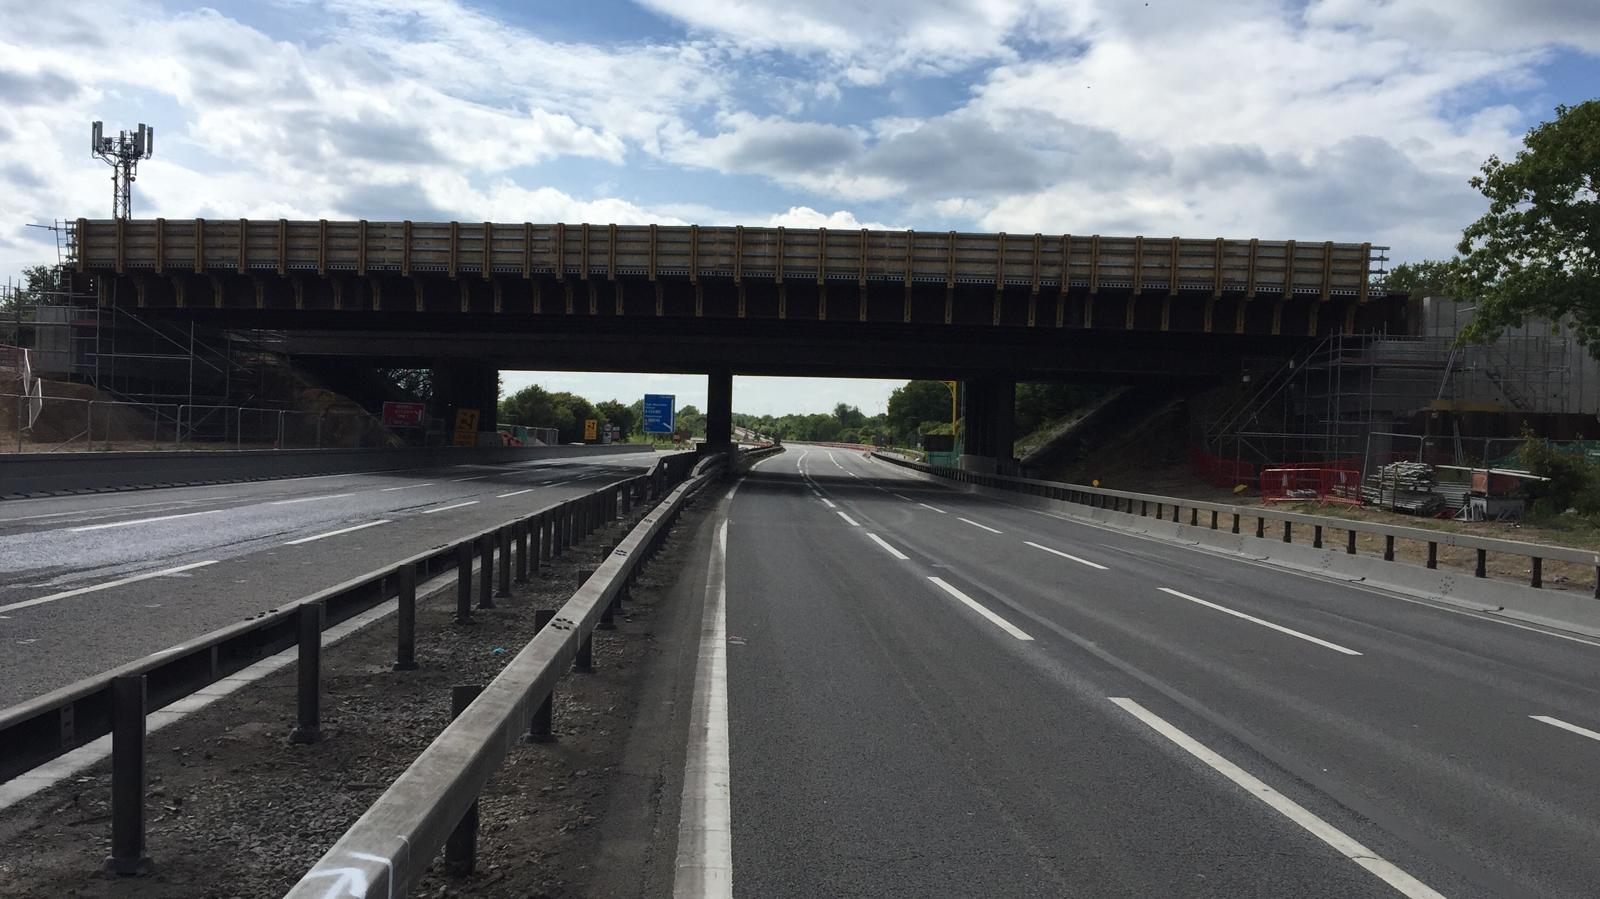 The new Ascot Road bridge is now in place. It's now time for the rest of the work to be completed before it opens later this year